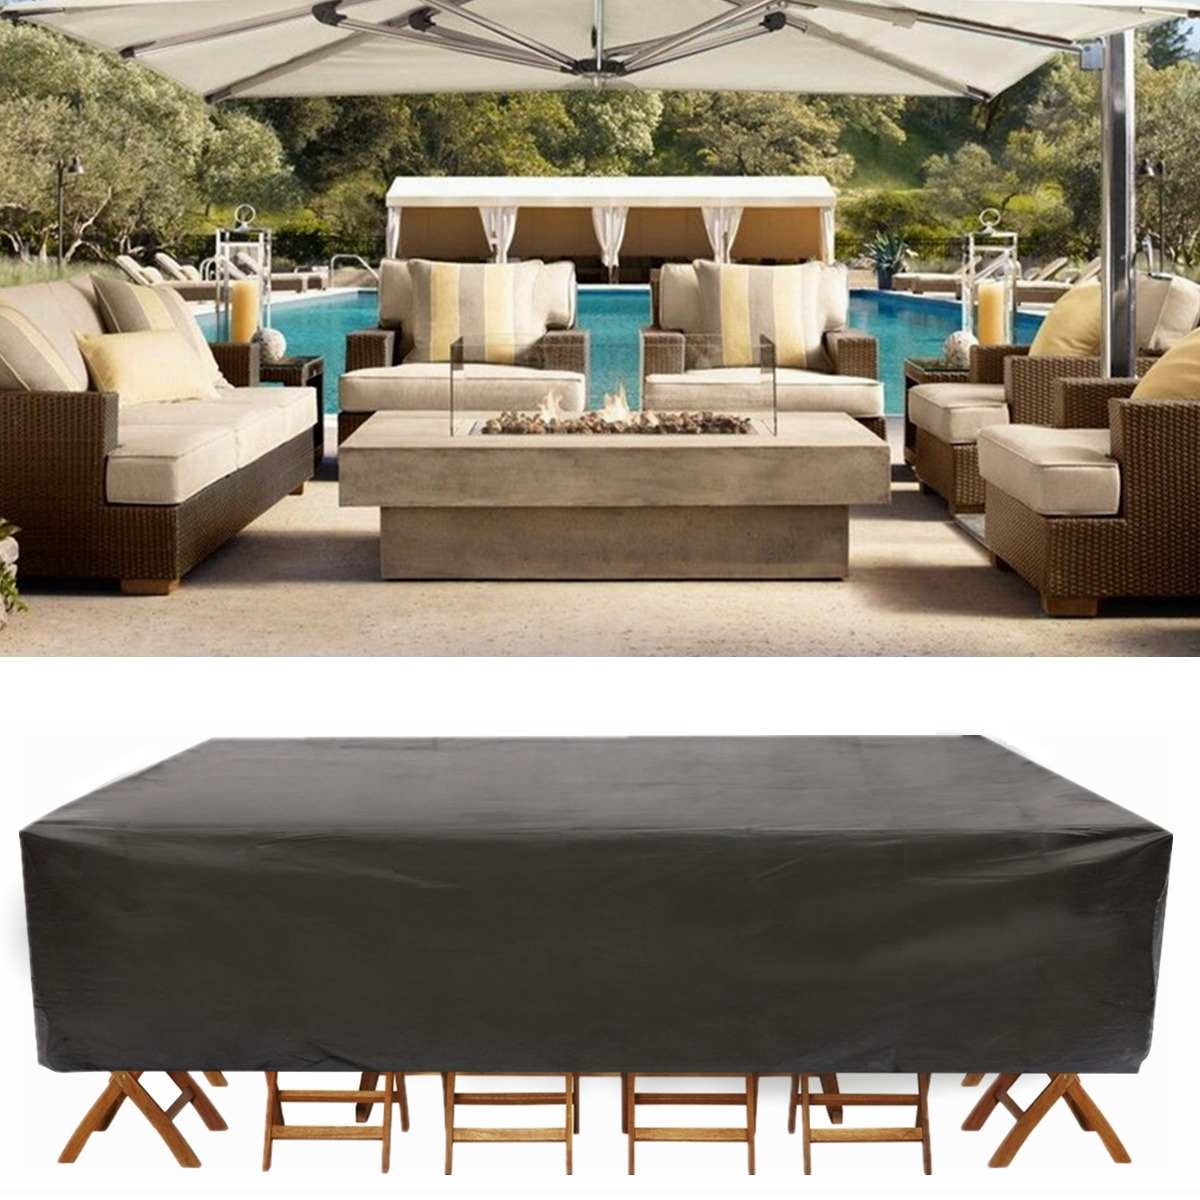 Waterproof Outdoor Garden Furniture Covers Dust Cover For Rattan Table Chair Sofa Protection Set Furniture Dustproof Rain Cover